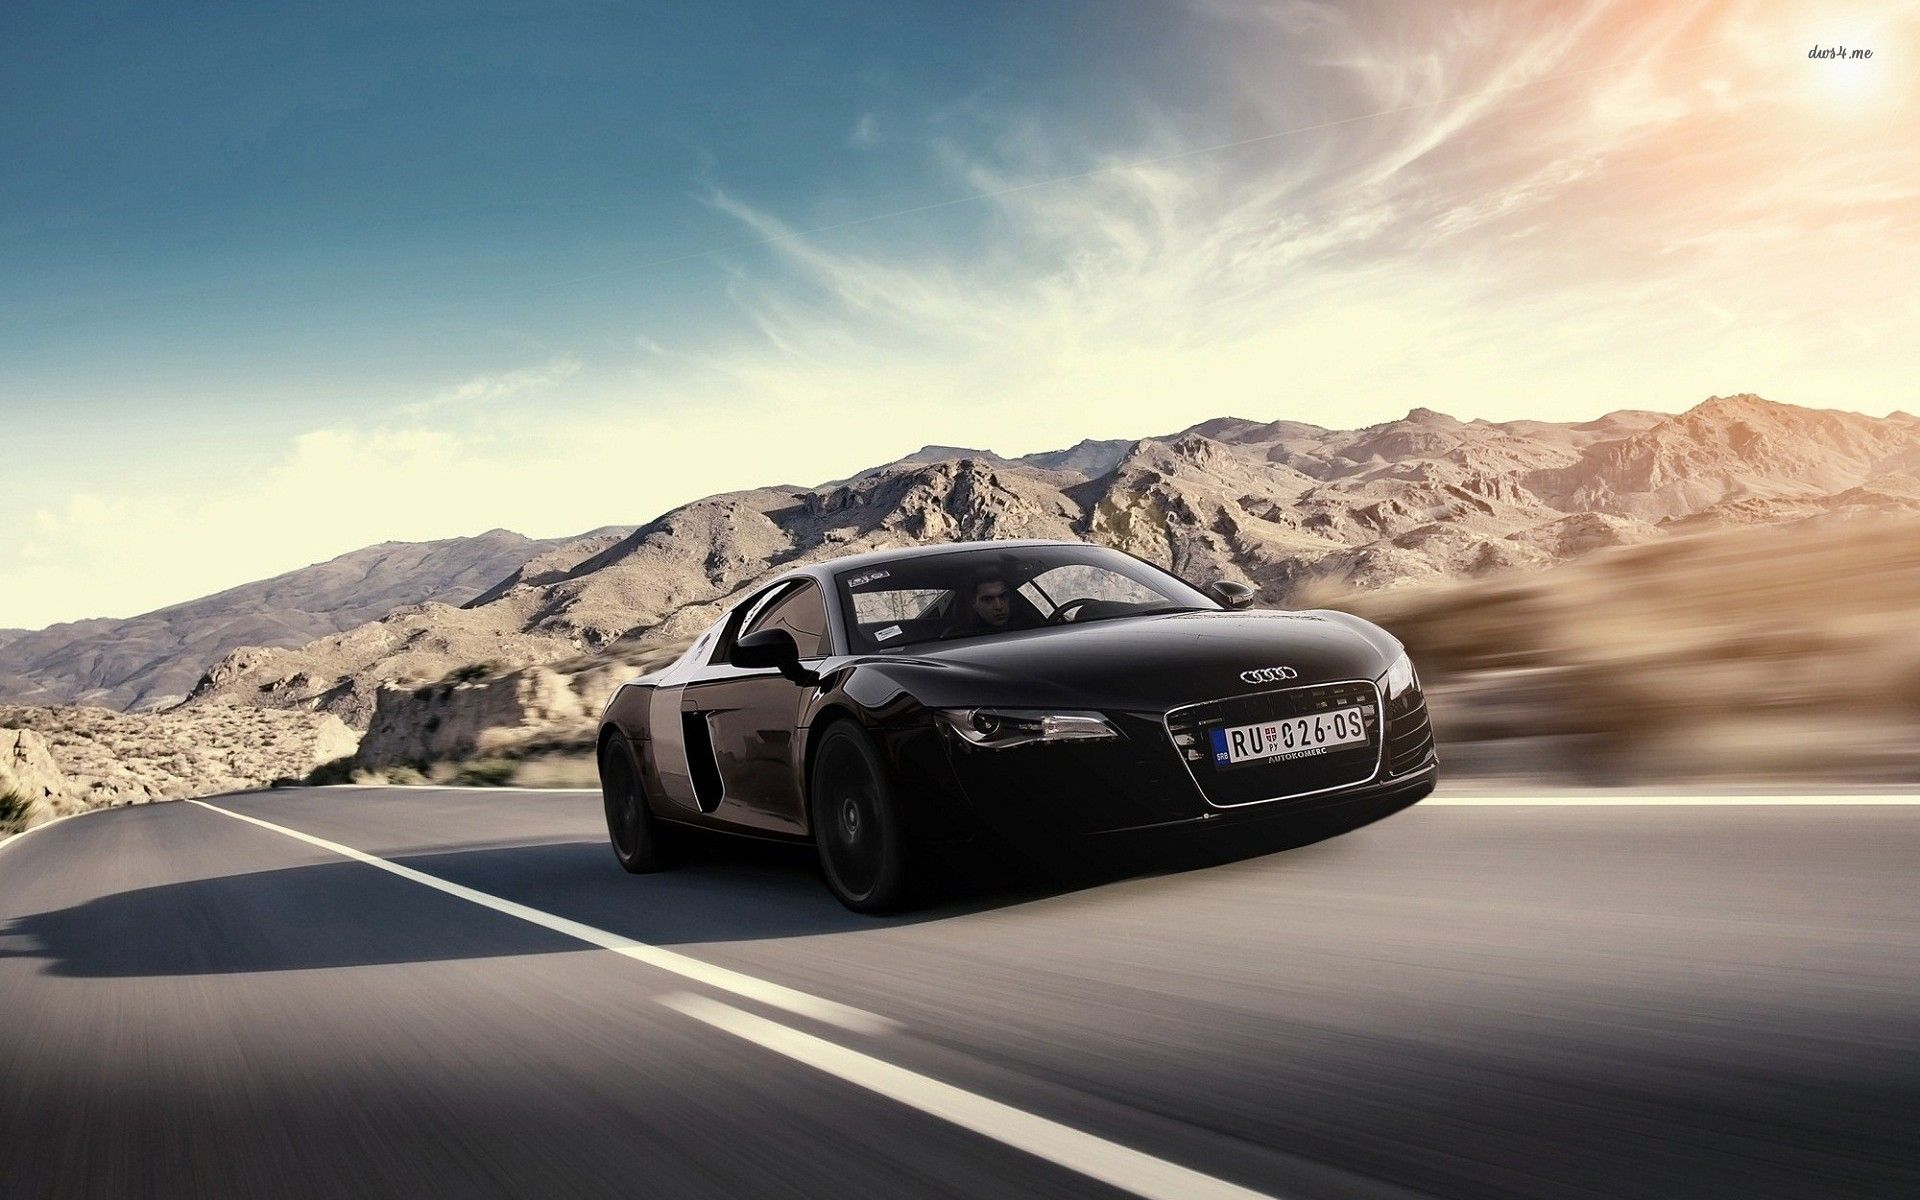 Audi R8 Desktop Wallpaper 25 1920x1200